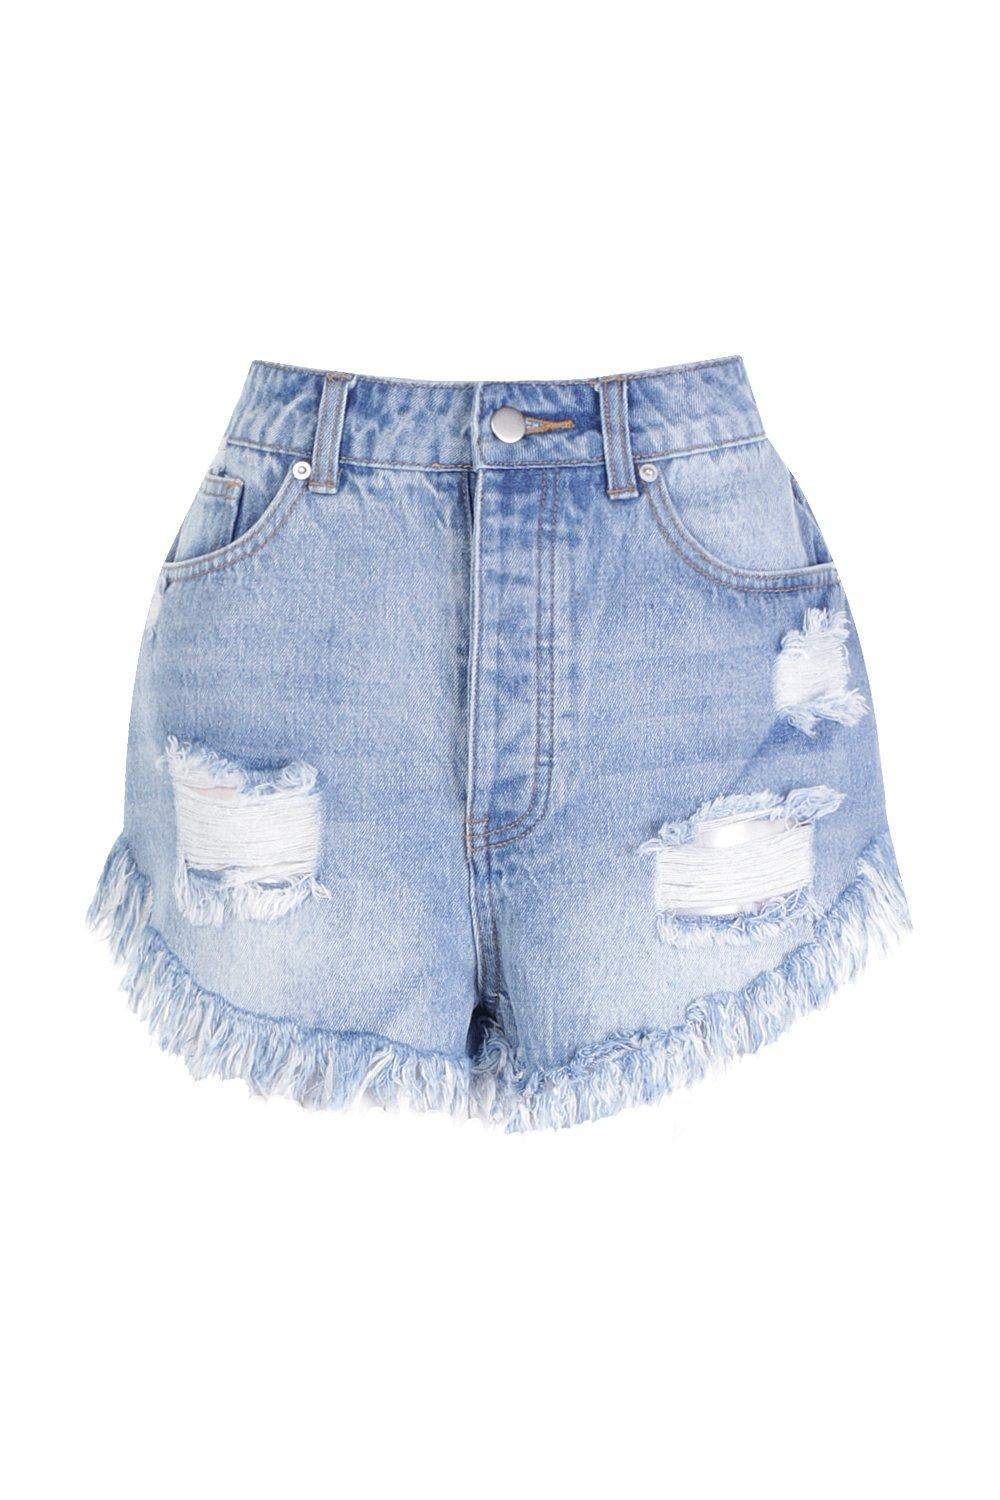 Extreme Frey Short Hem High Waisted Petite Denim blue EtnwBqxO6